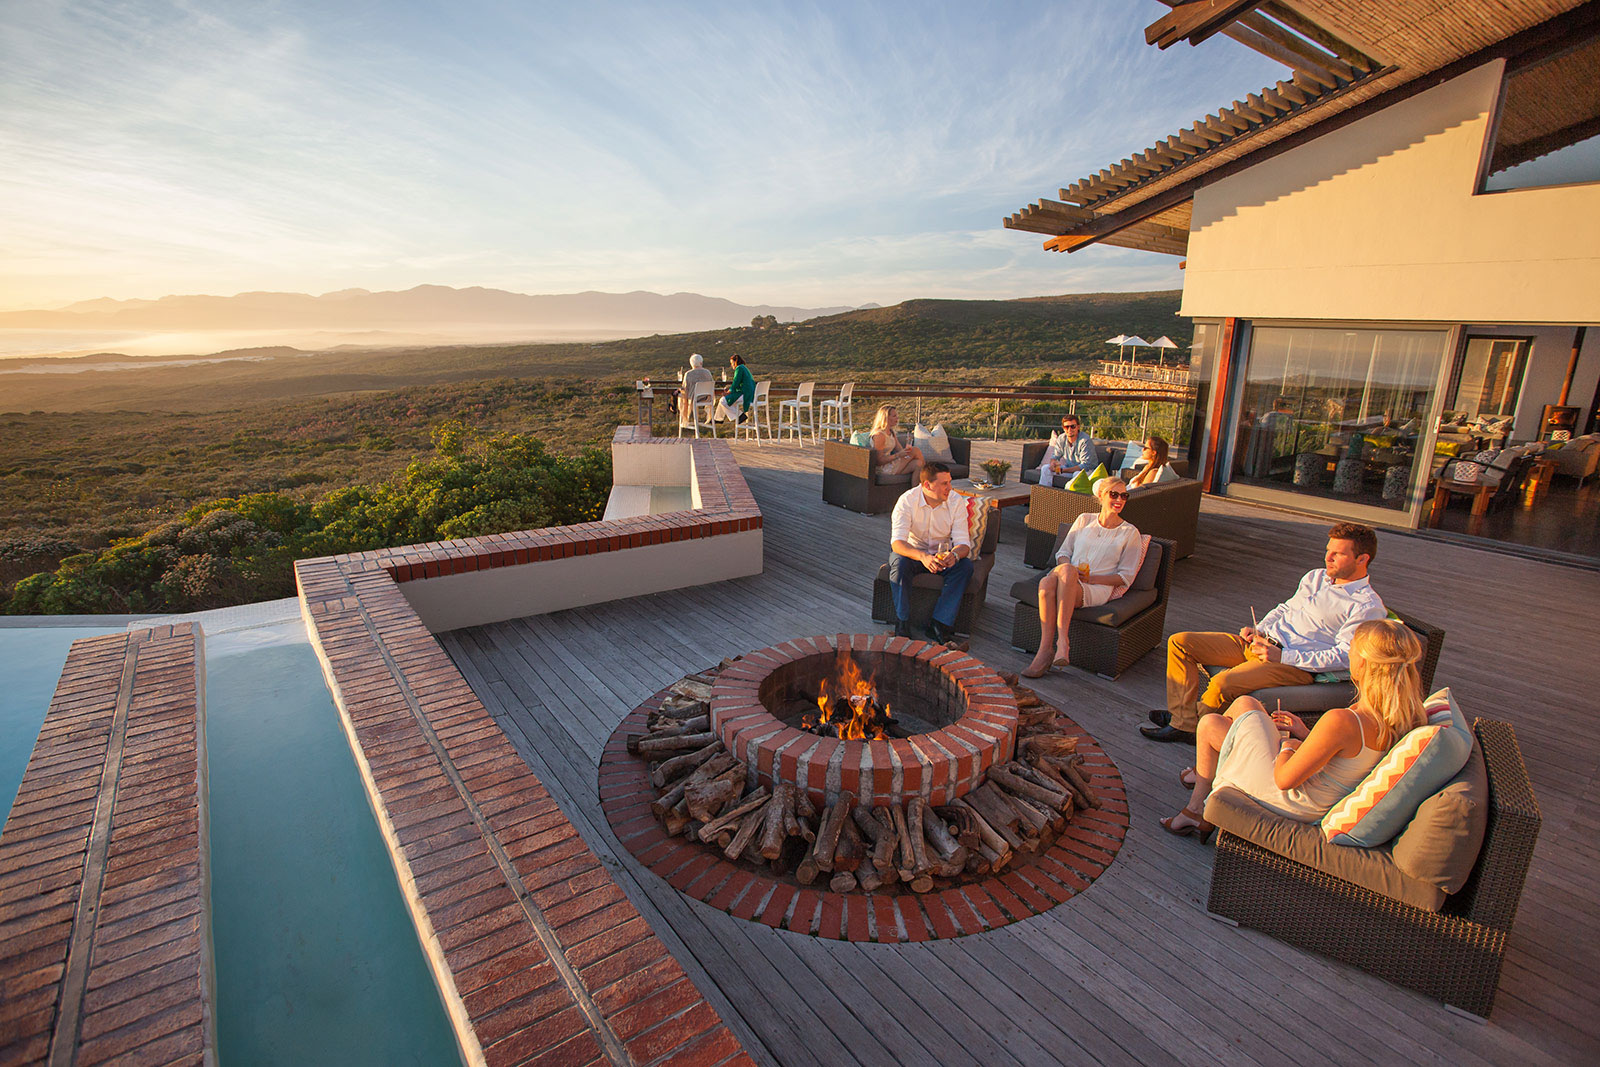 Grootbos Private Nature Reserve, South Africa on Behance